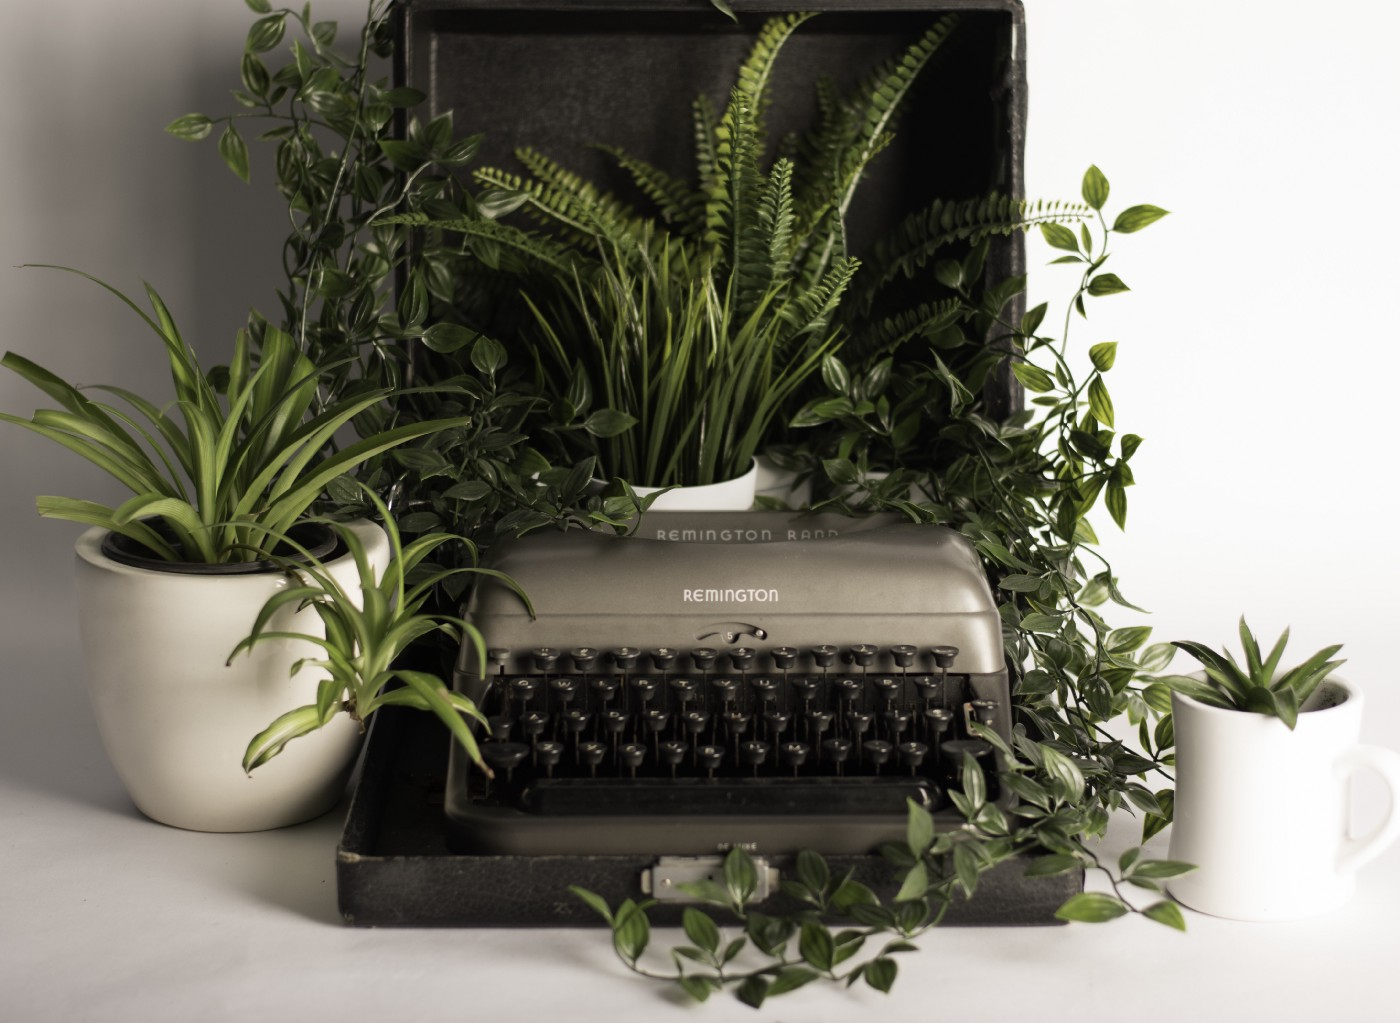 An old typewriter on a desk surrounded by houseplants and vines that are growing all over it